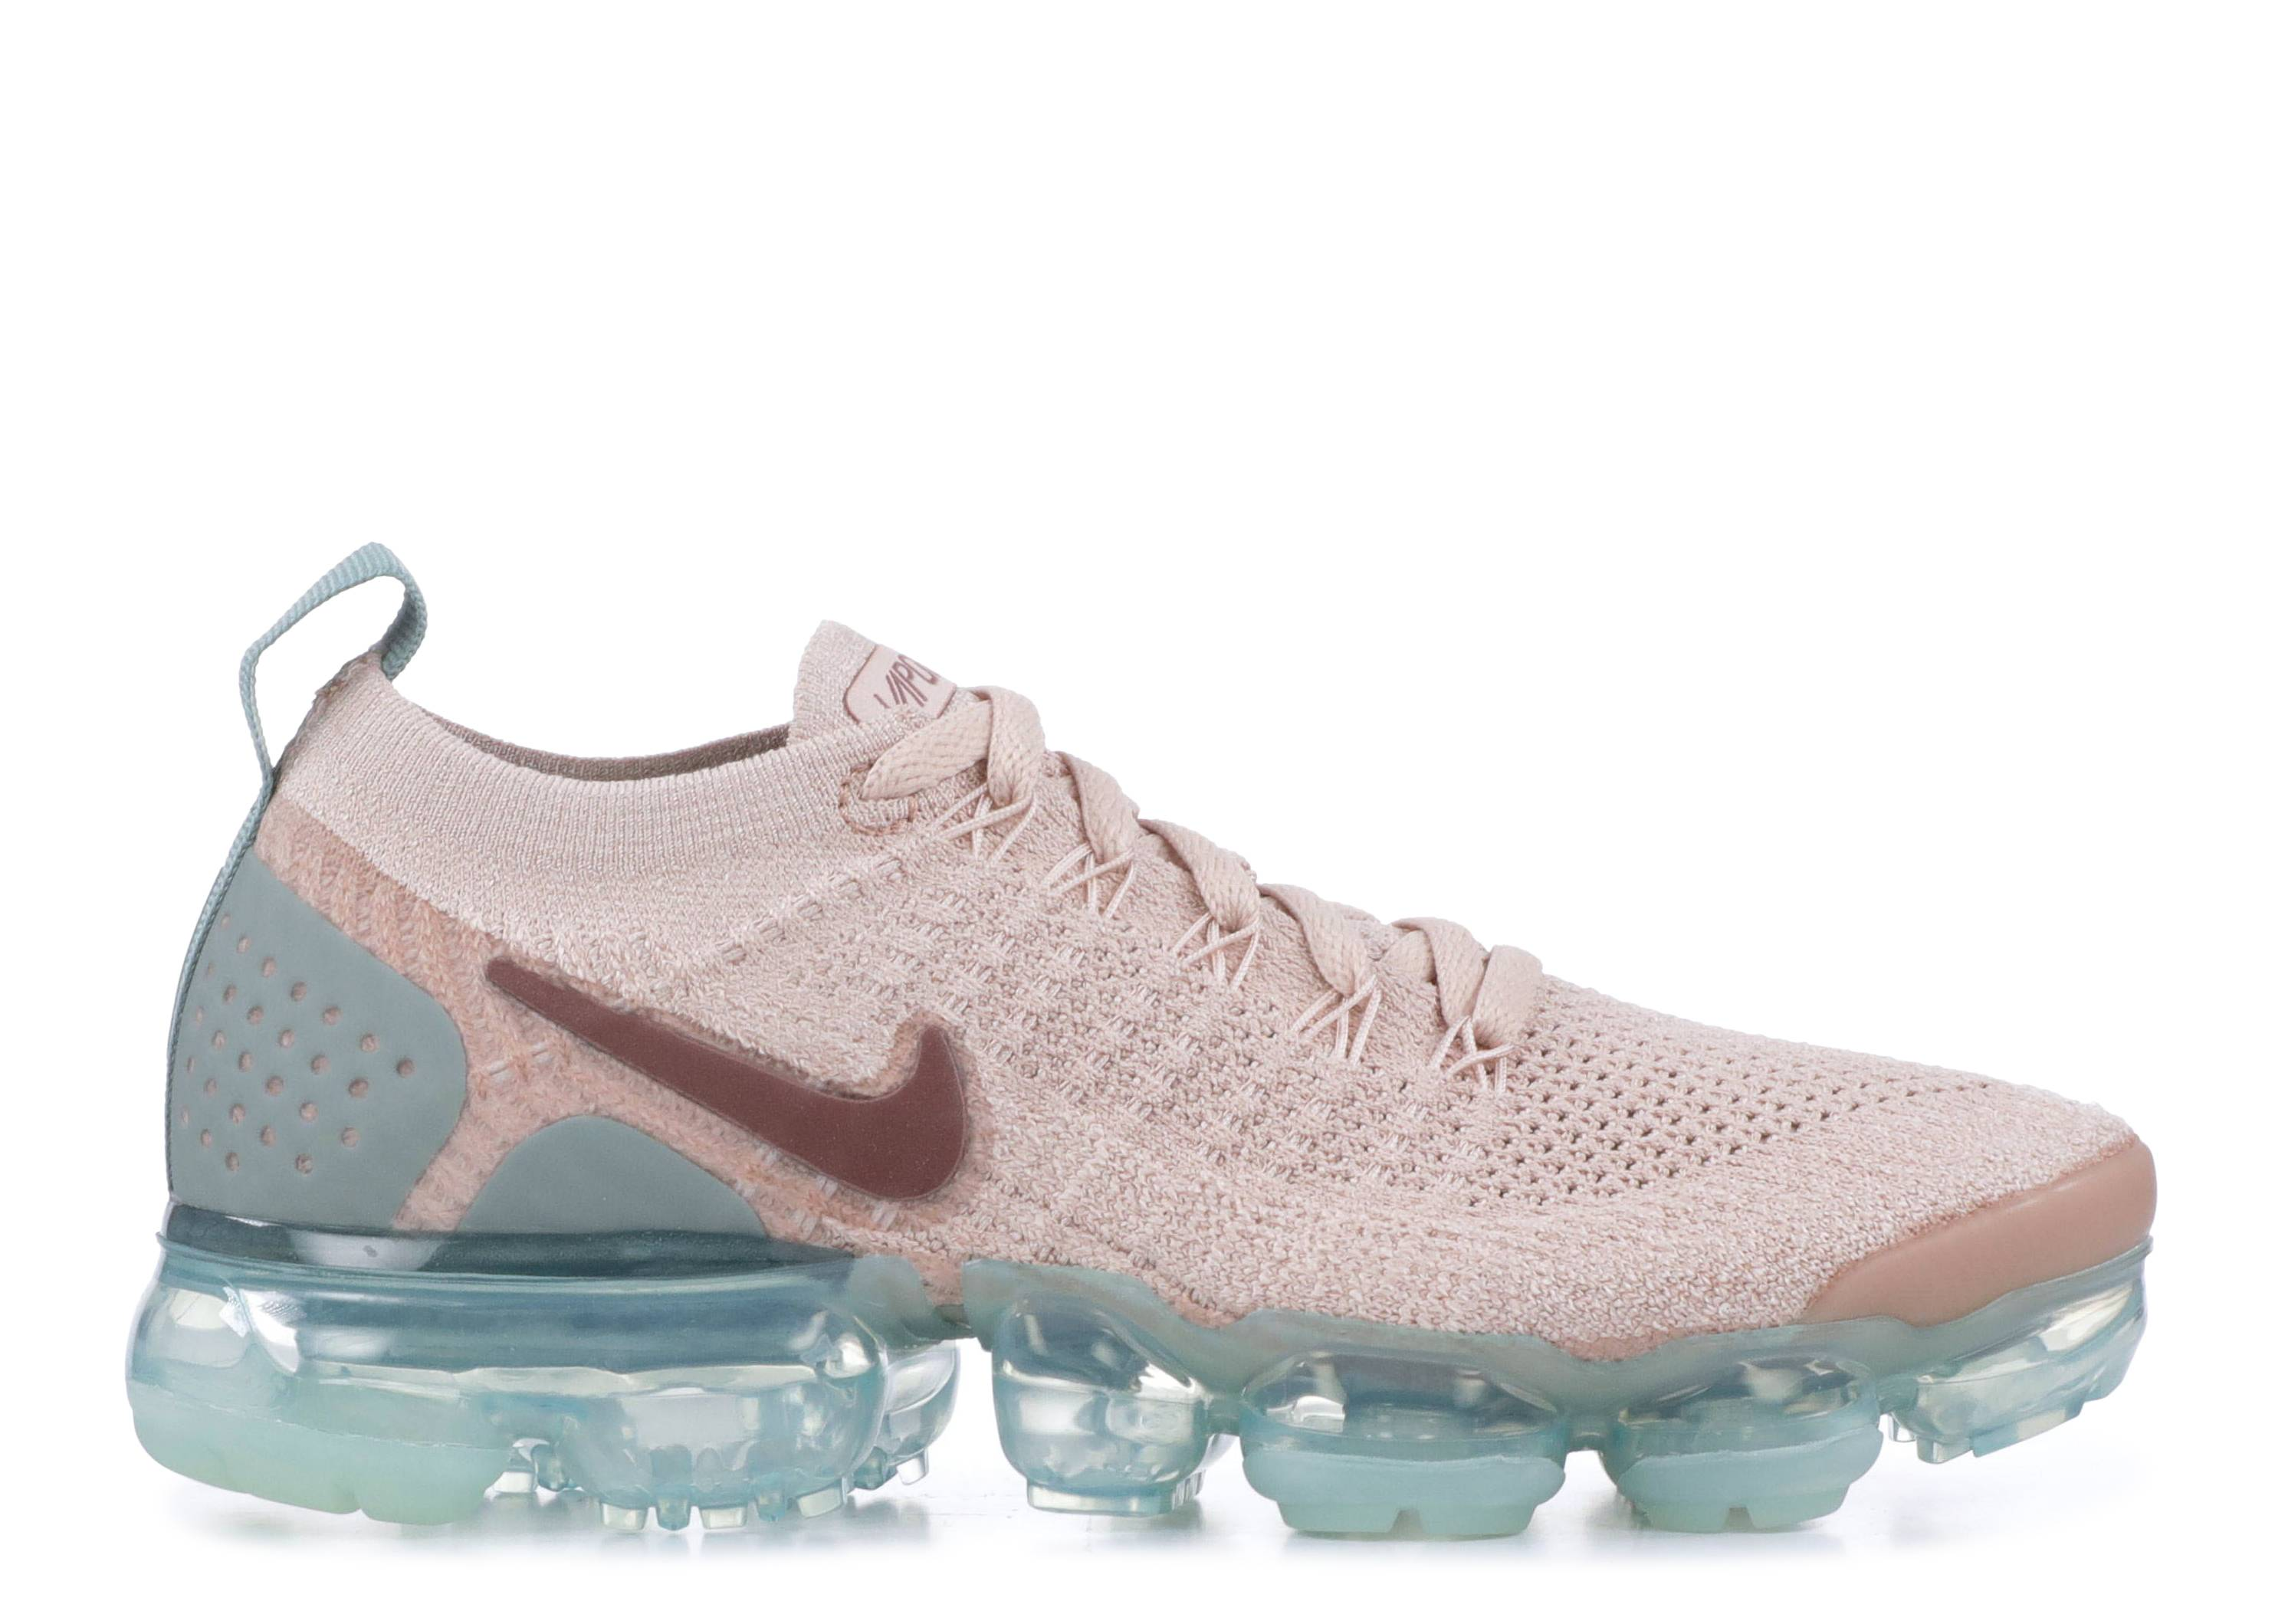 7a7f589d944b8d W Nike Air Vapormax Flyknit 2 - Nike - 942843 203 - particle beige ...